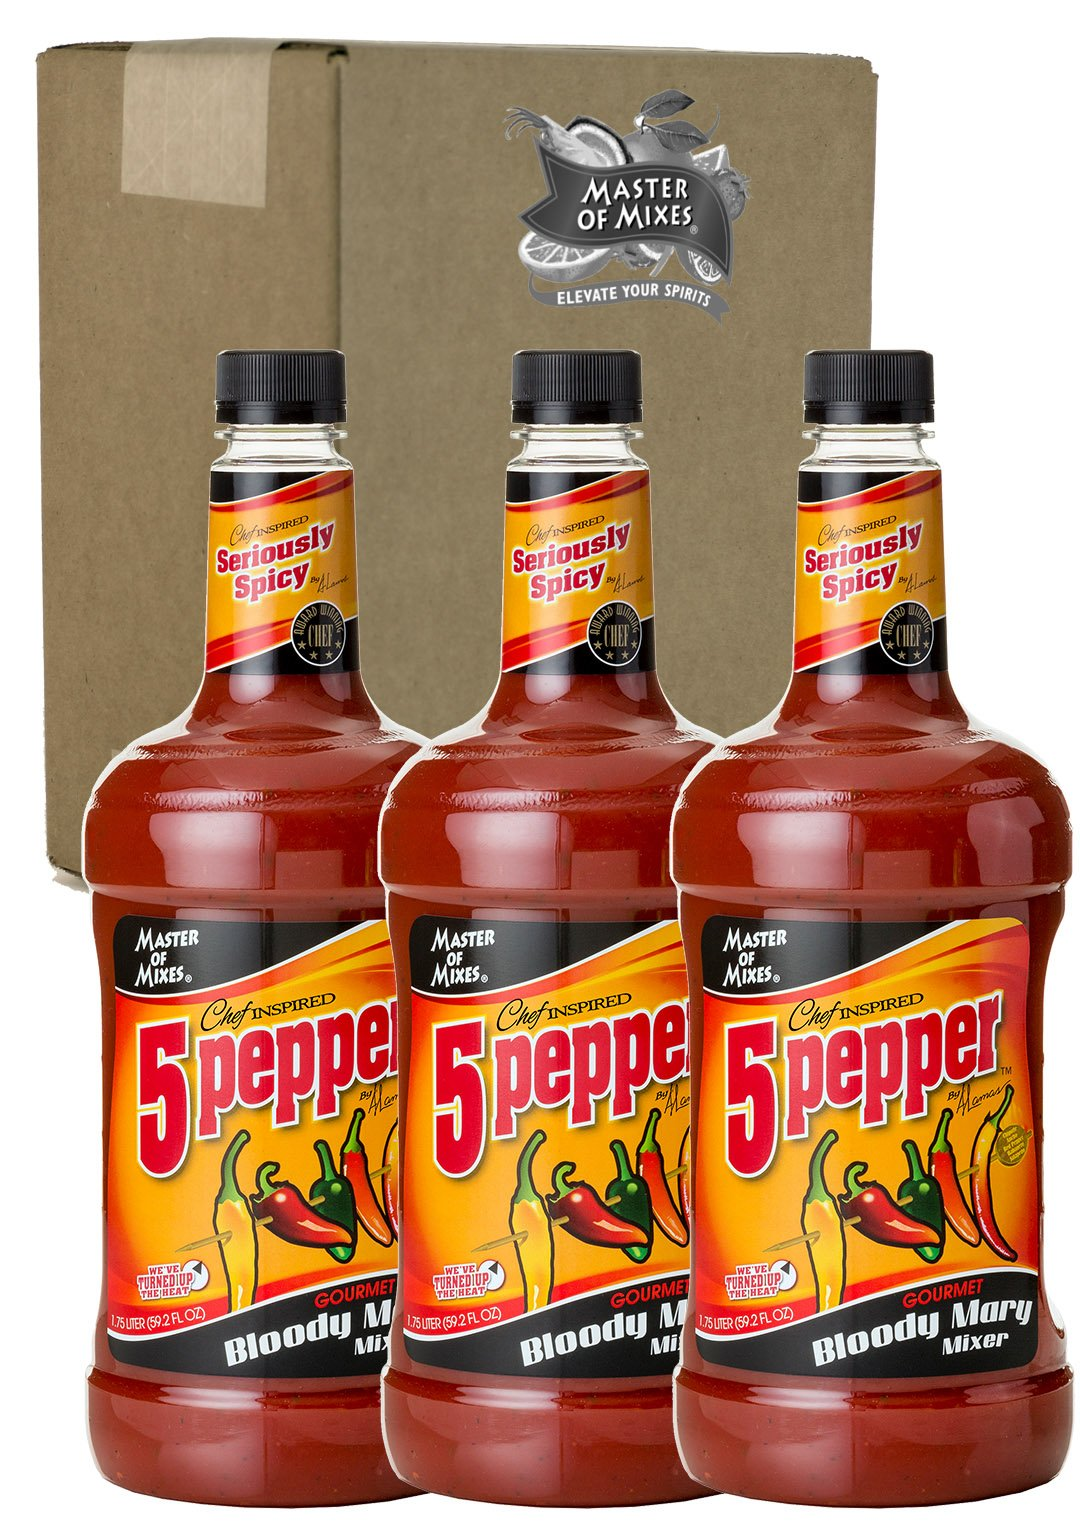 Master of Mixes 5 Pepper Extra Spicy Bloody Mary Drink Mix, Ready To Use, 1.75 Liter Bottle (59.2 Fl Oz), Pack of 3 by Master of Mixes (Image #1)